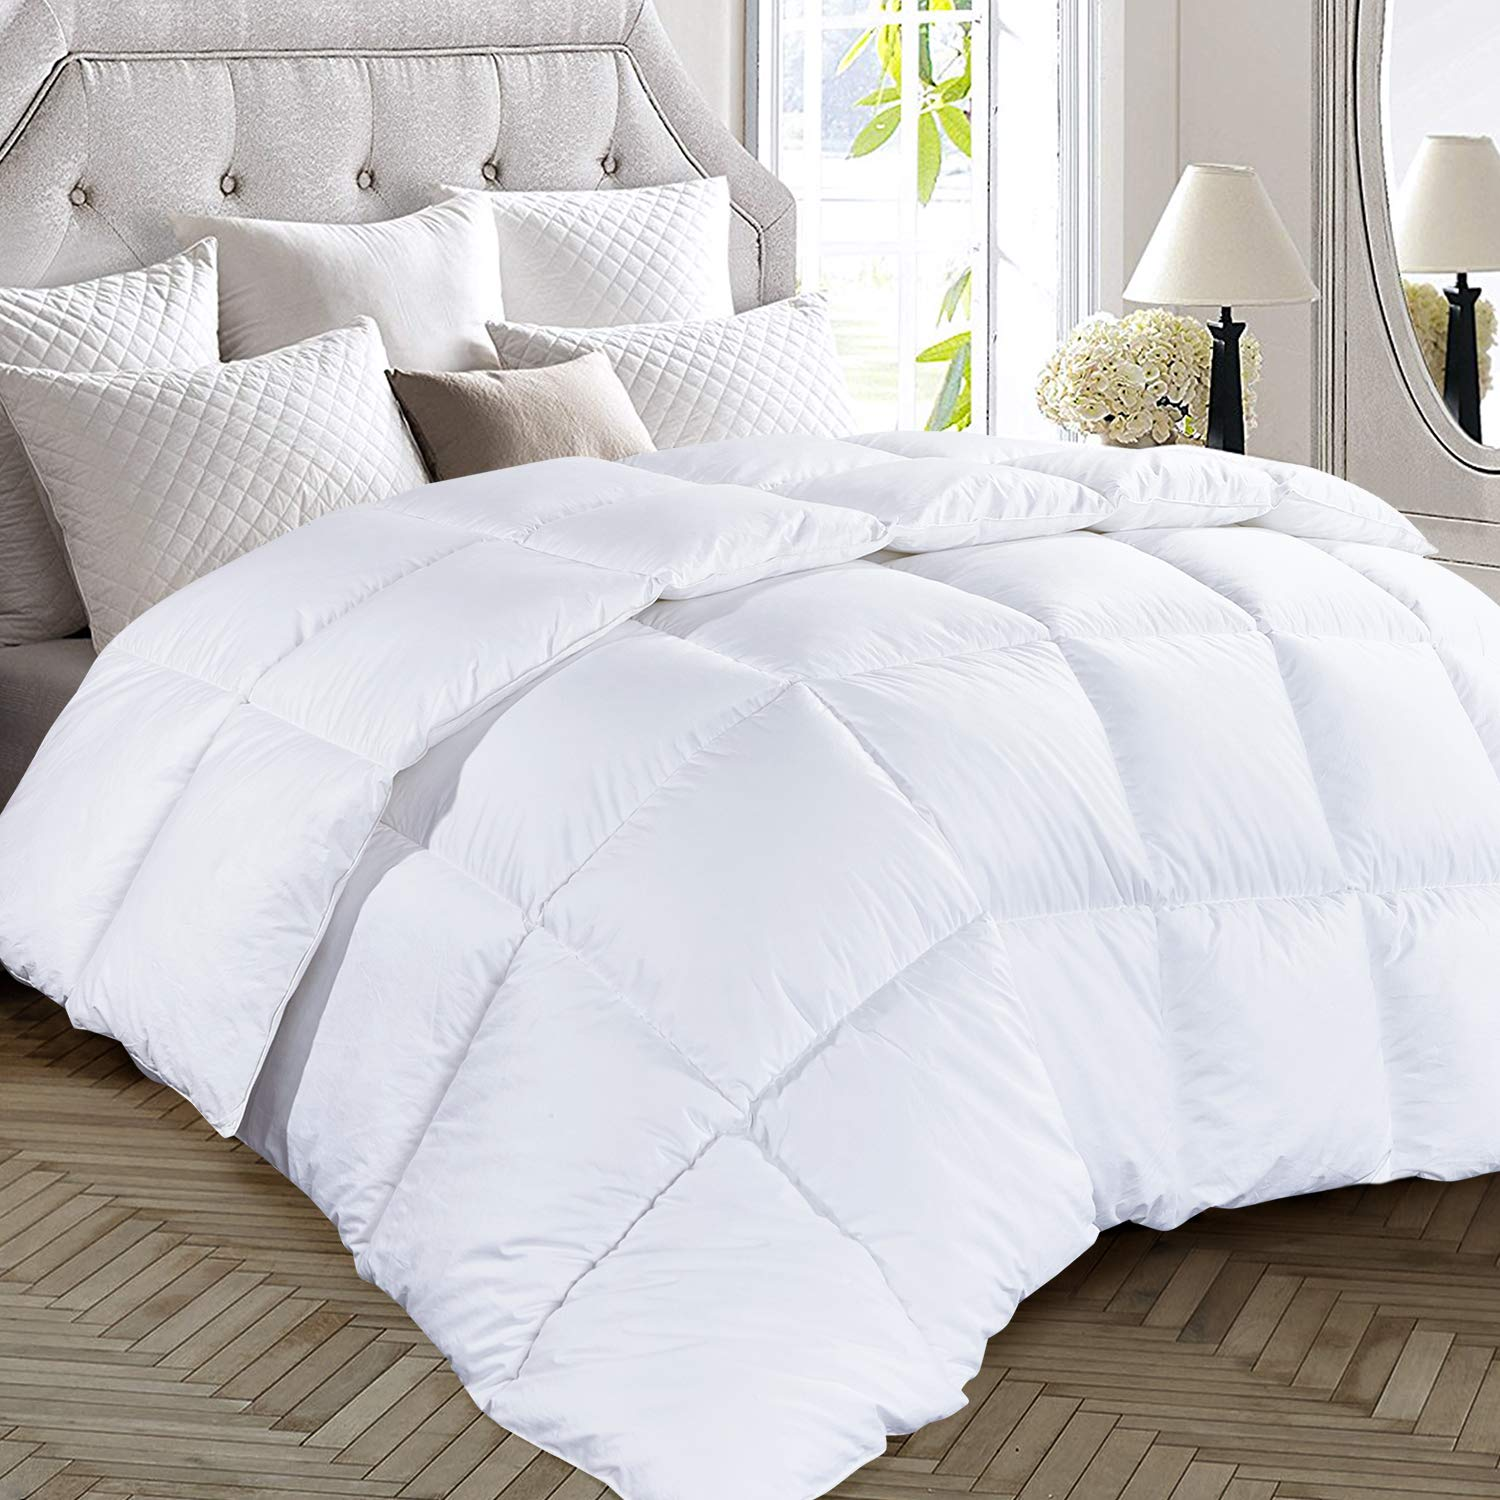 OHAPPES Wh Queen Comforter Soft Cooling Goose Down Alternative Insert - Microfiber Fill - 8 Corner Duvet Tabs - All Seasons - Hypoallergenic - Fluffy Warm White - 88 by 88 Inches, Full